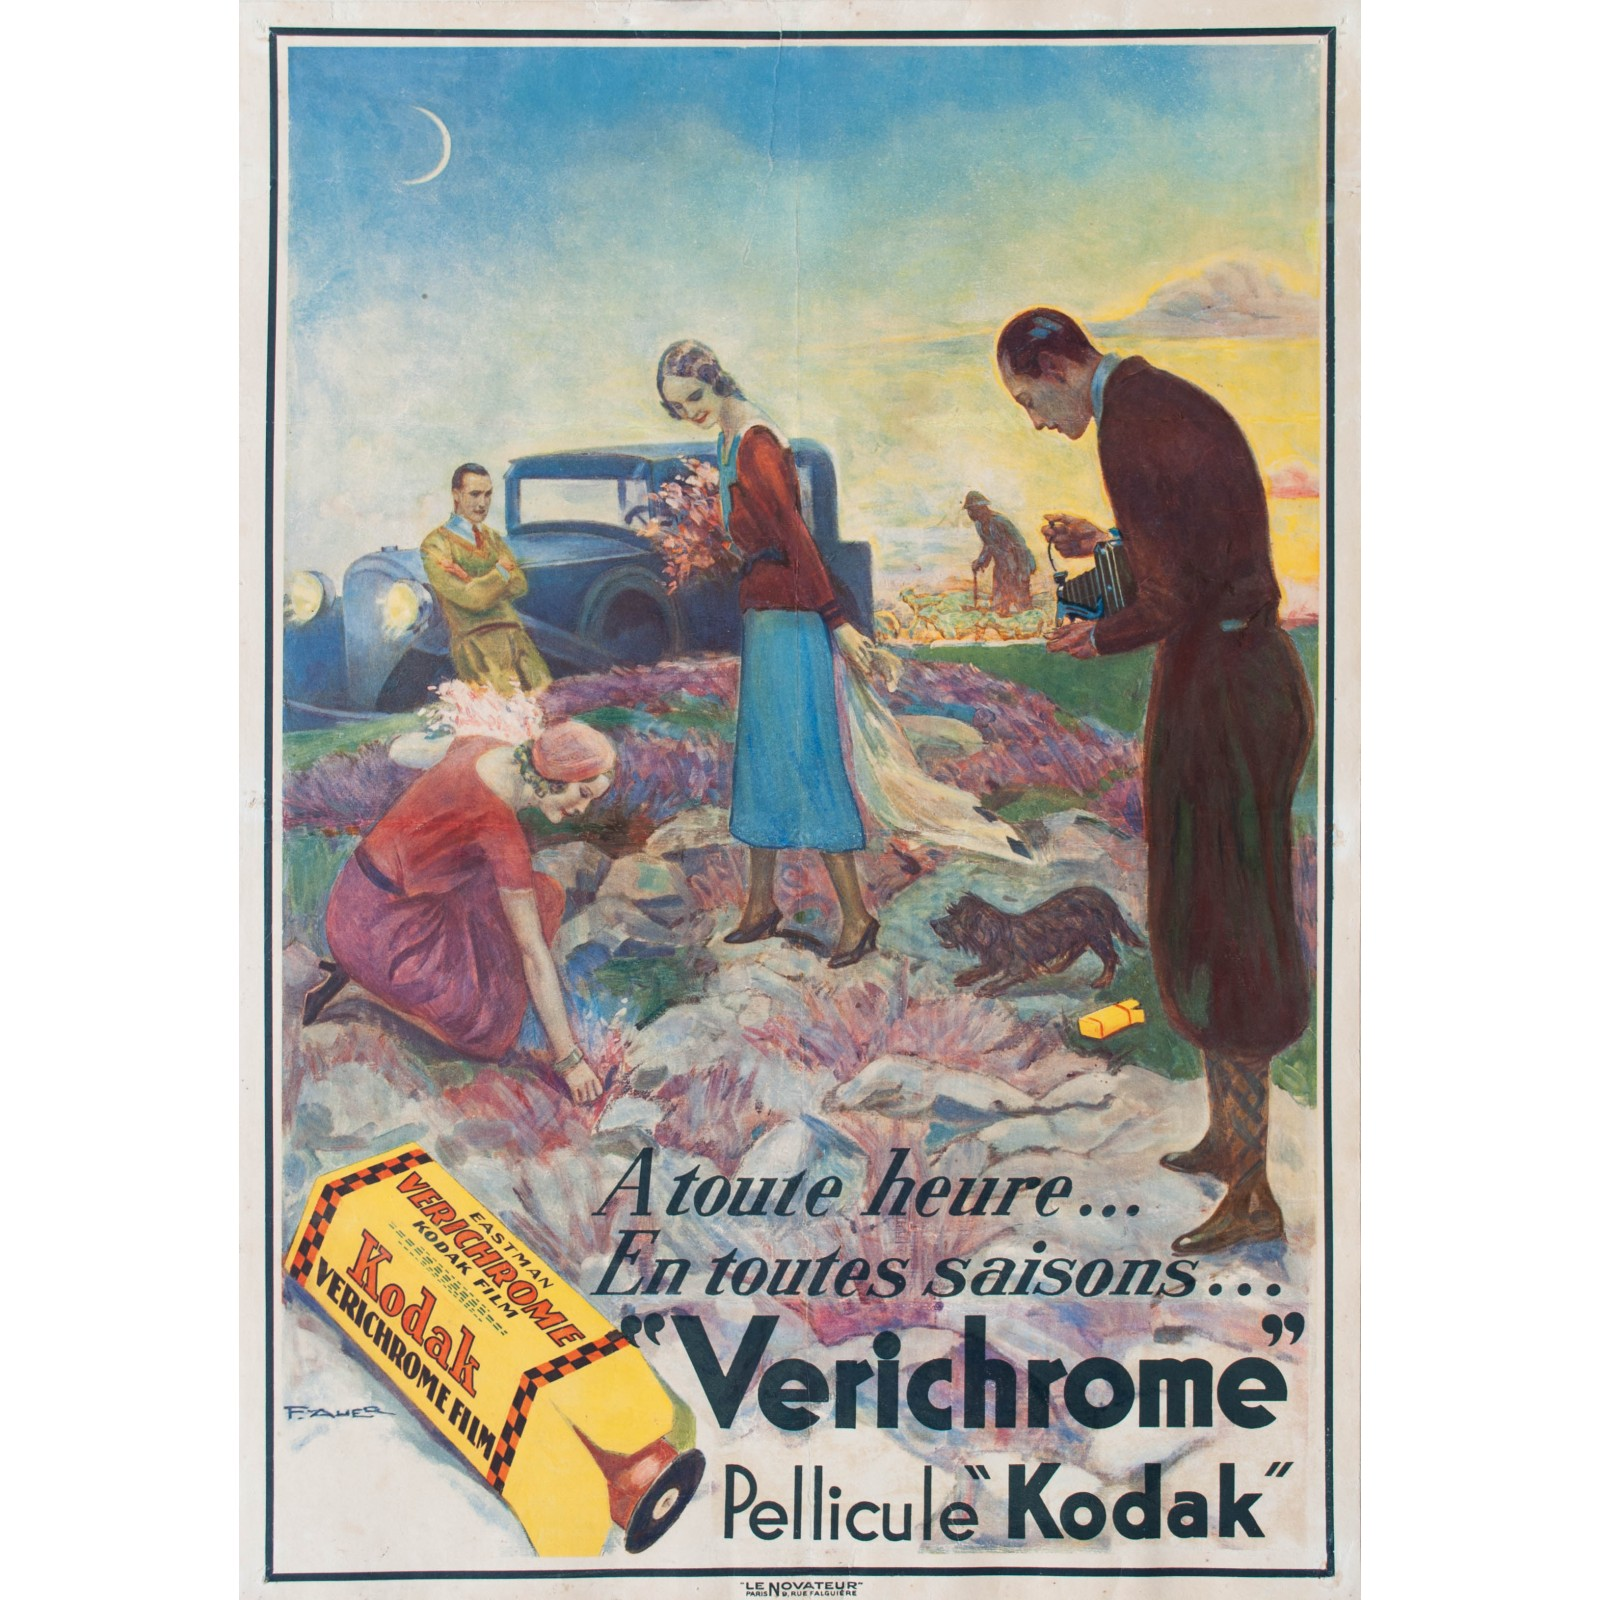 Verichrome Pellicule Kodak  F  Auer  1935  - Posters We Love